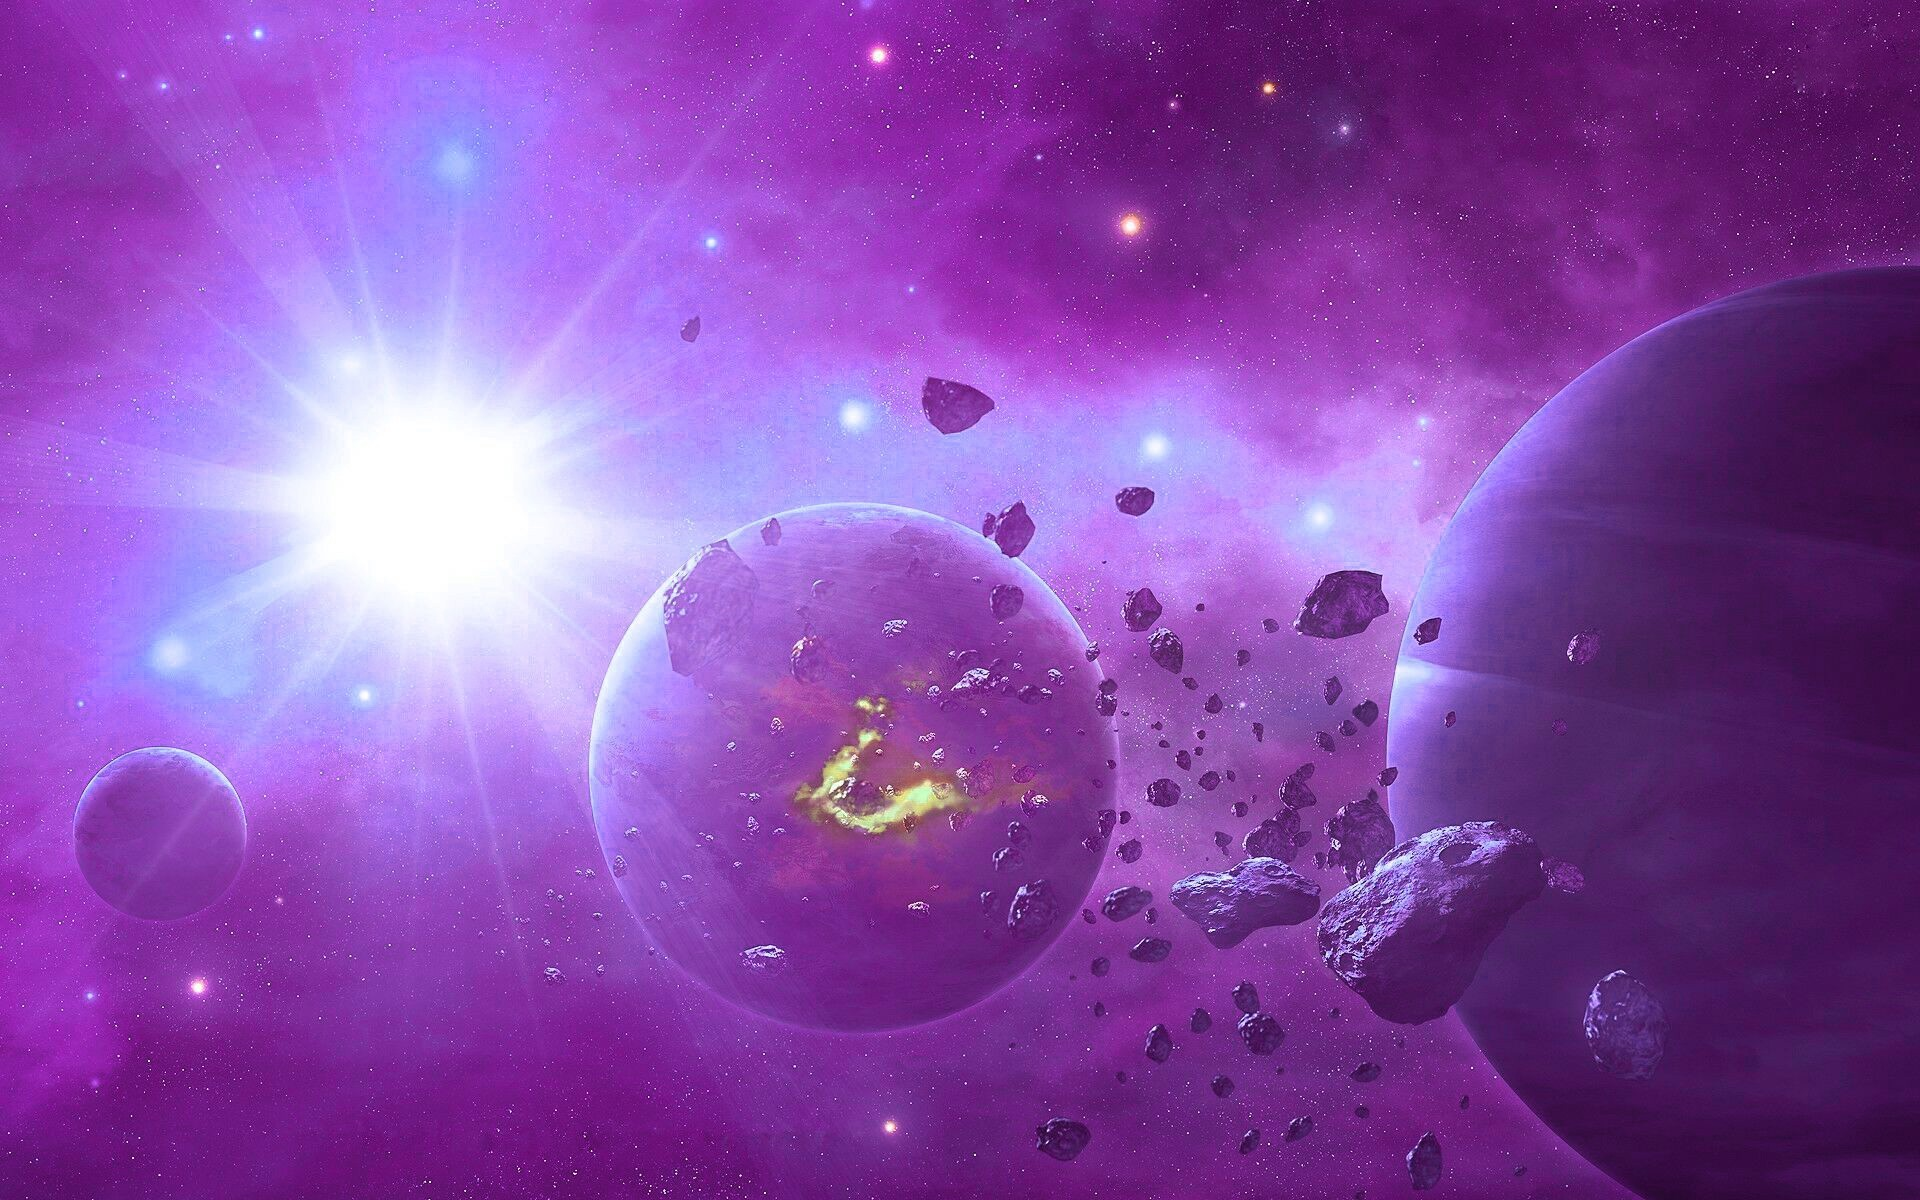 Hd purple space wallpaper 65 images - Space wallpaper 1920x1200 ...